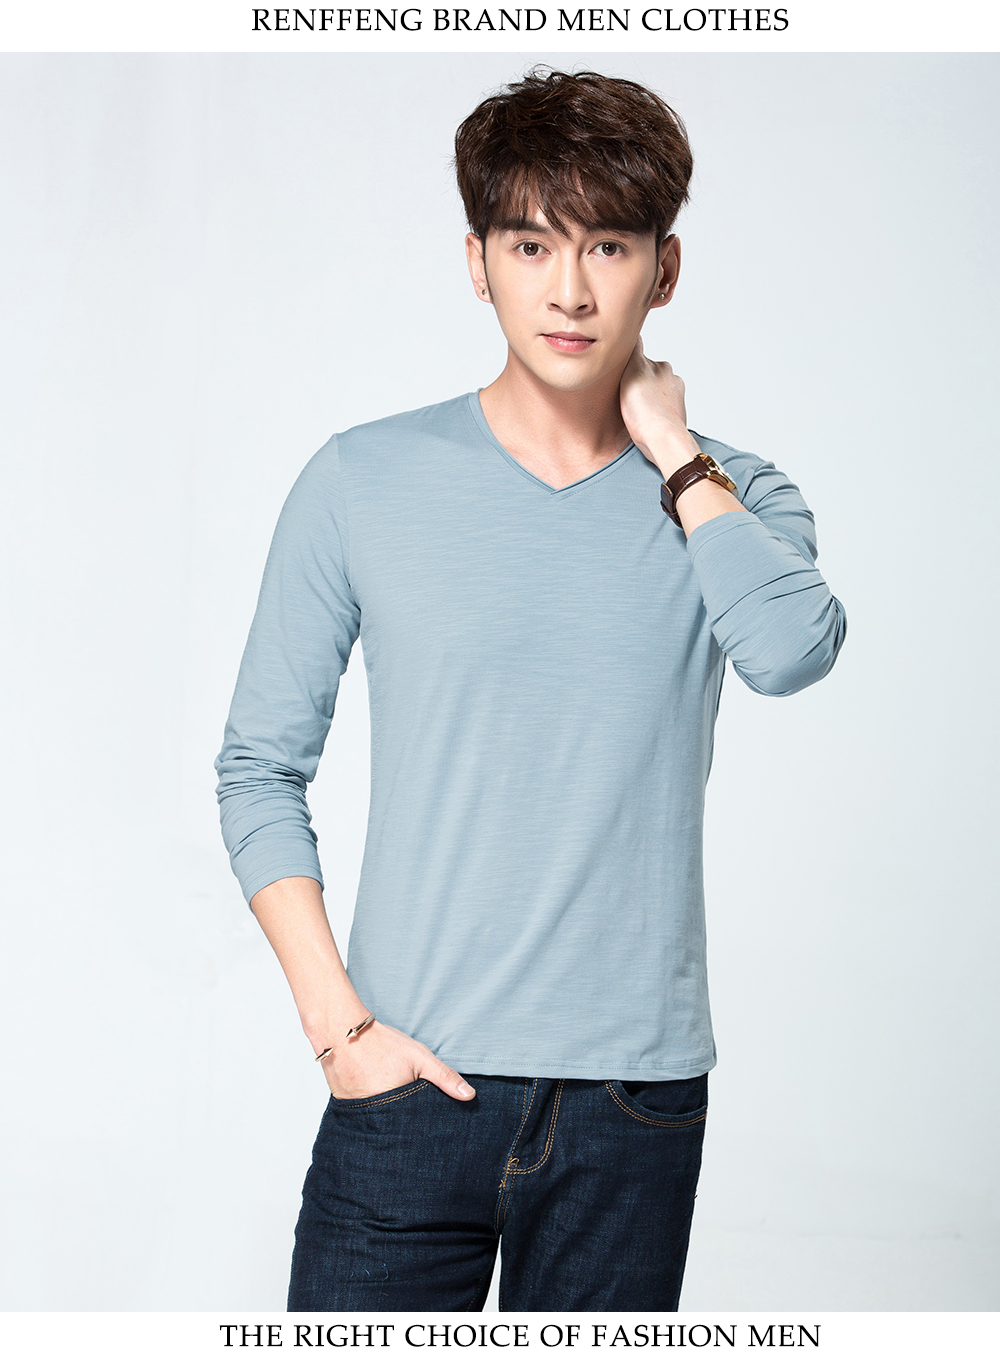 High-Neck Mercerized Modal Long-Sleeved Conjoined Knit Shirt Tight-Fitting Bottoming Shirt